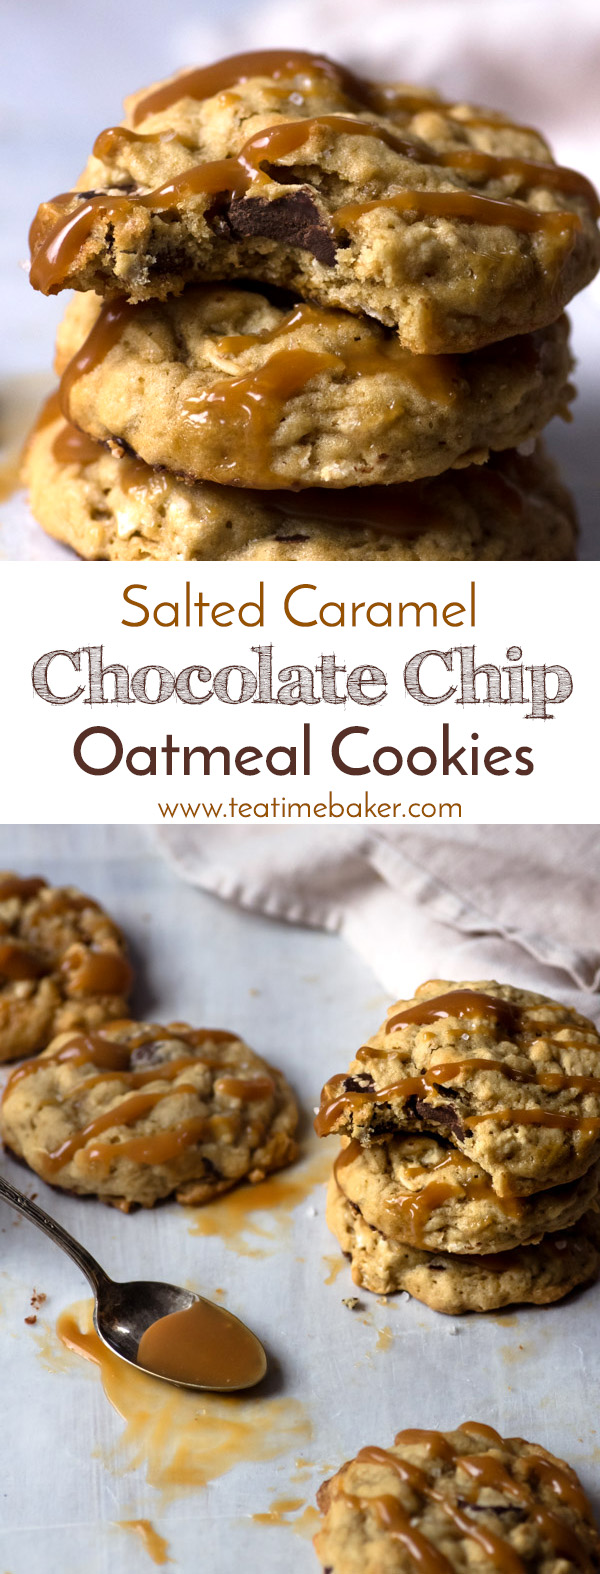 Salted Caramel Chocolate Chip Oatmeal Cookies